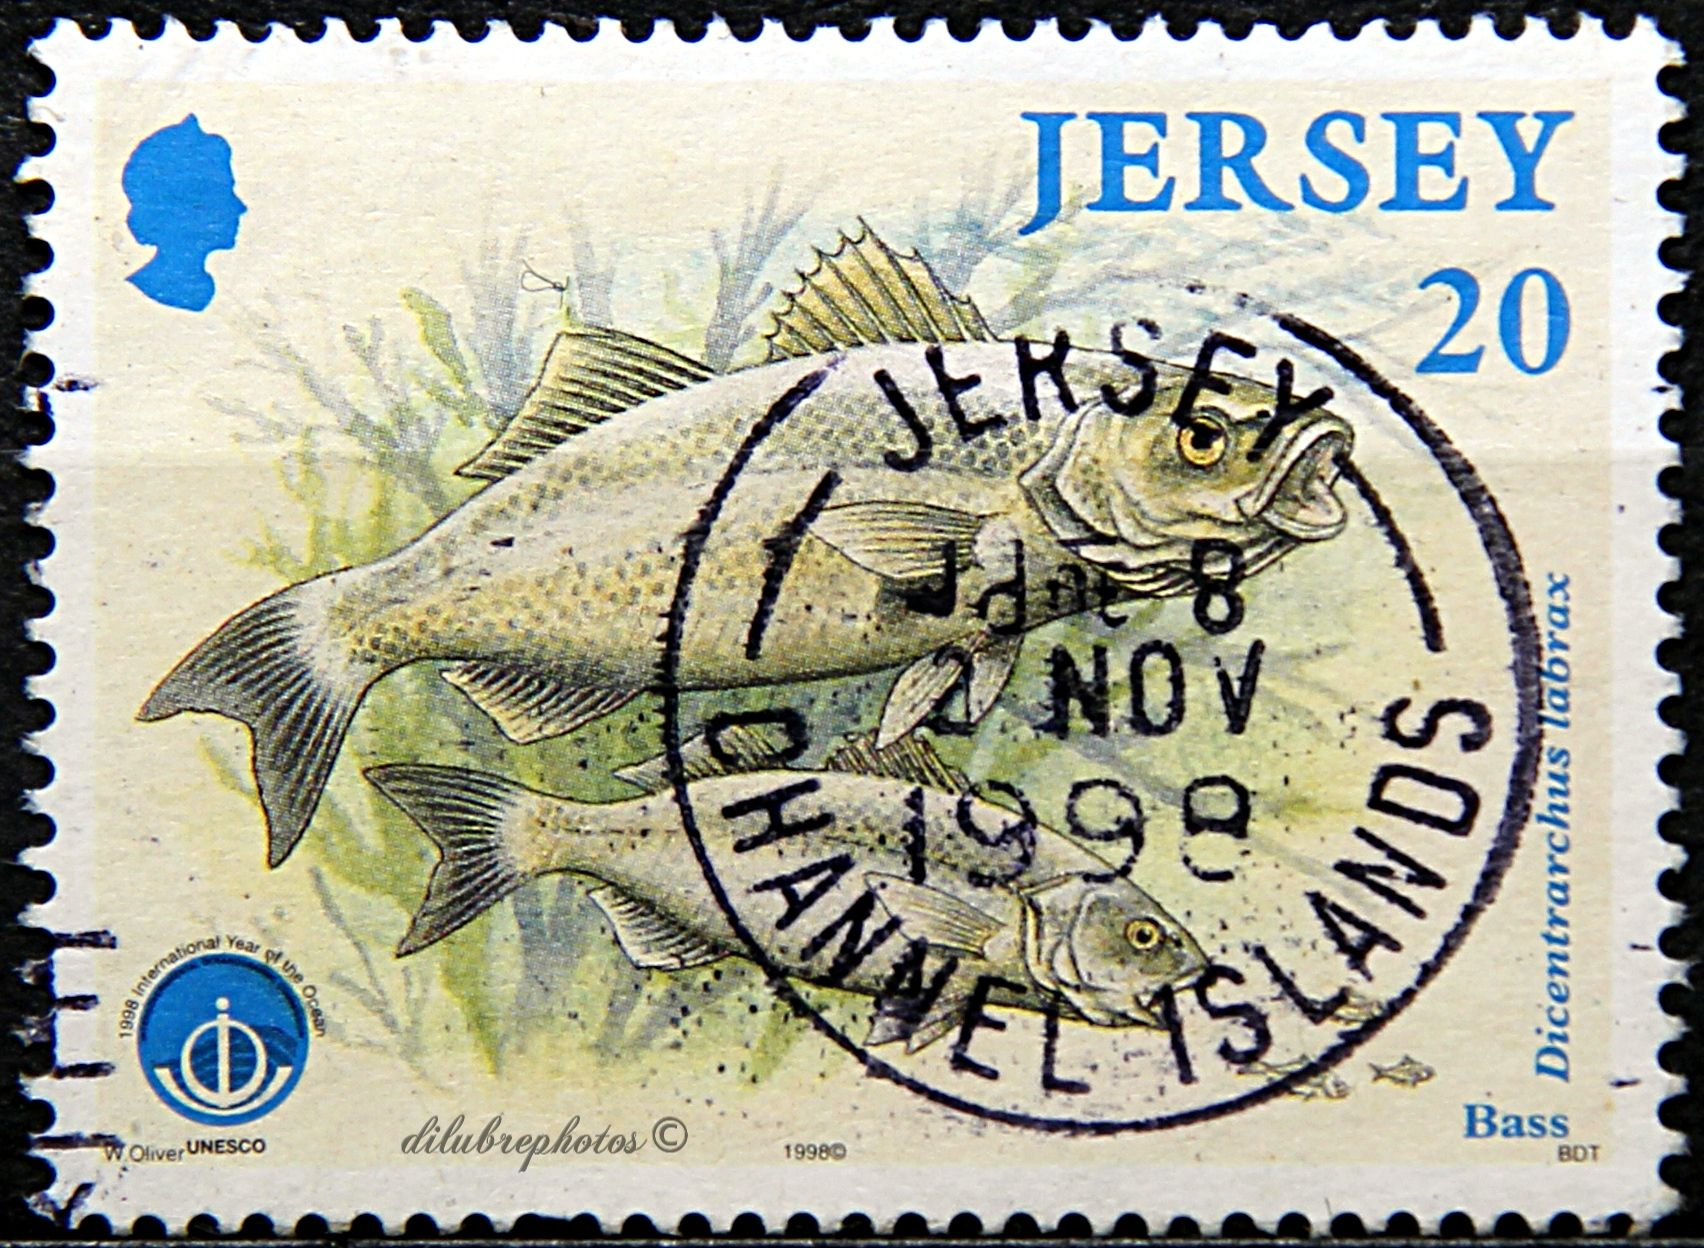 Jersey.  MARINE LIFE, INTERNATIONAL YEAR OF THE OCEAN.  BASS.  Scott 858 A171, Issued 1998 Aug 11, Perf. 15 x 14 1/2, Lutho., 20. /ldb.